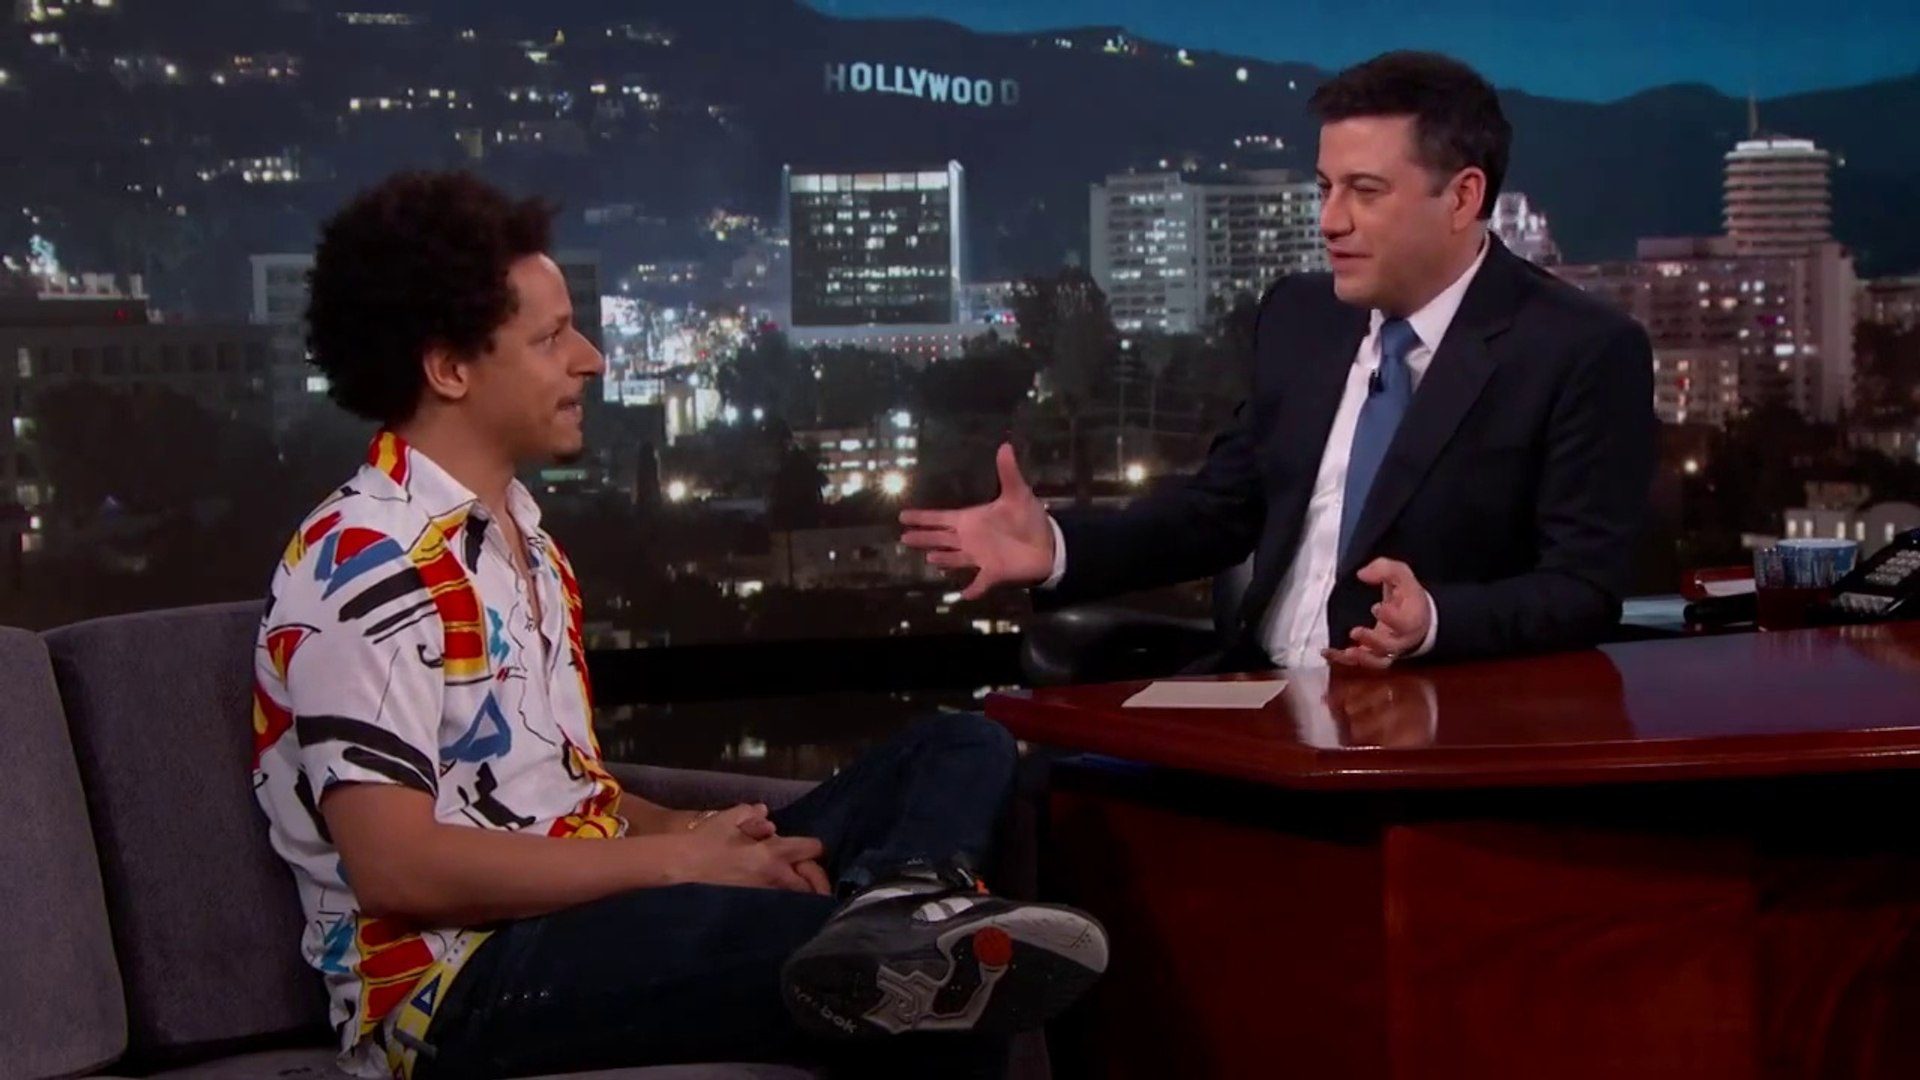 Eric Andres Talk Show Is Crazy Show Hd Jimmy Kimmel Live Video Dailymotion Kevin kimmel ретвитнул(а) arun chaudhary. eric andres talk show is crazy show hd jimmy kimmel live